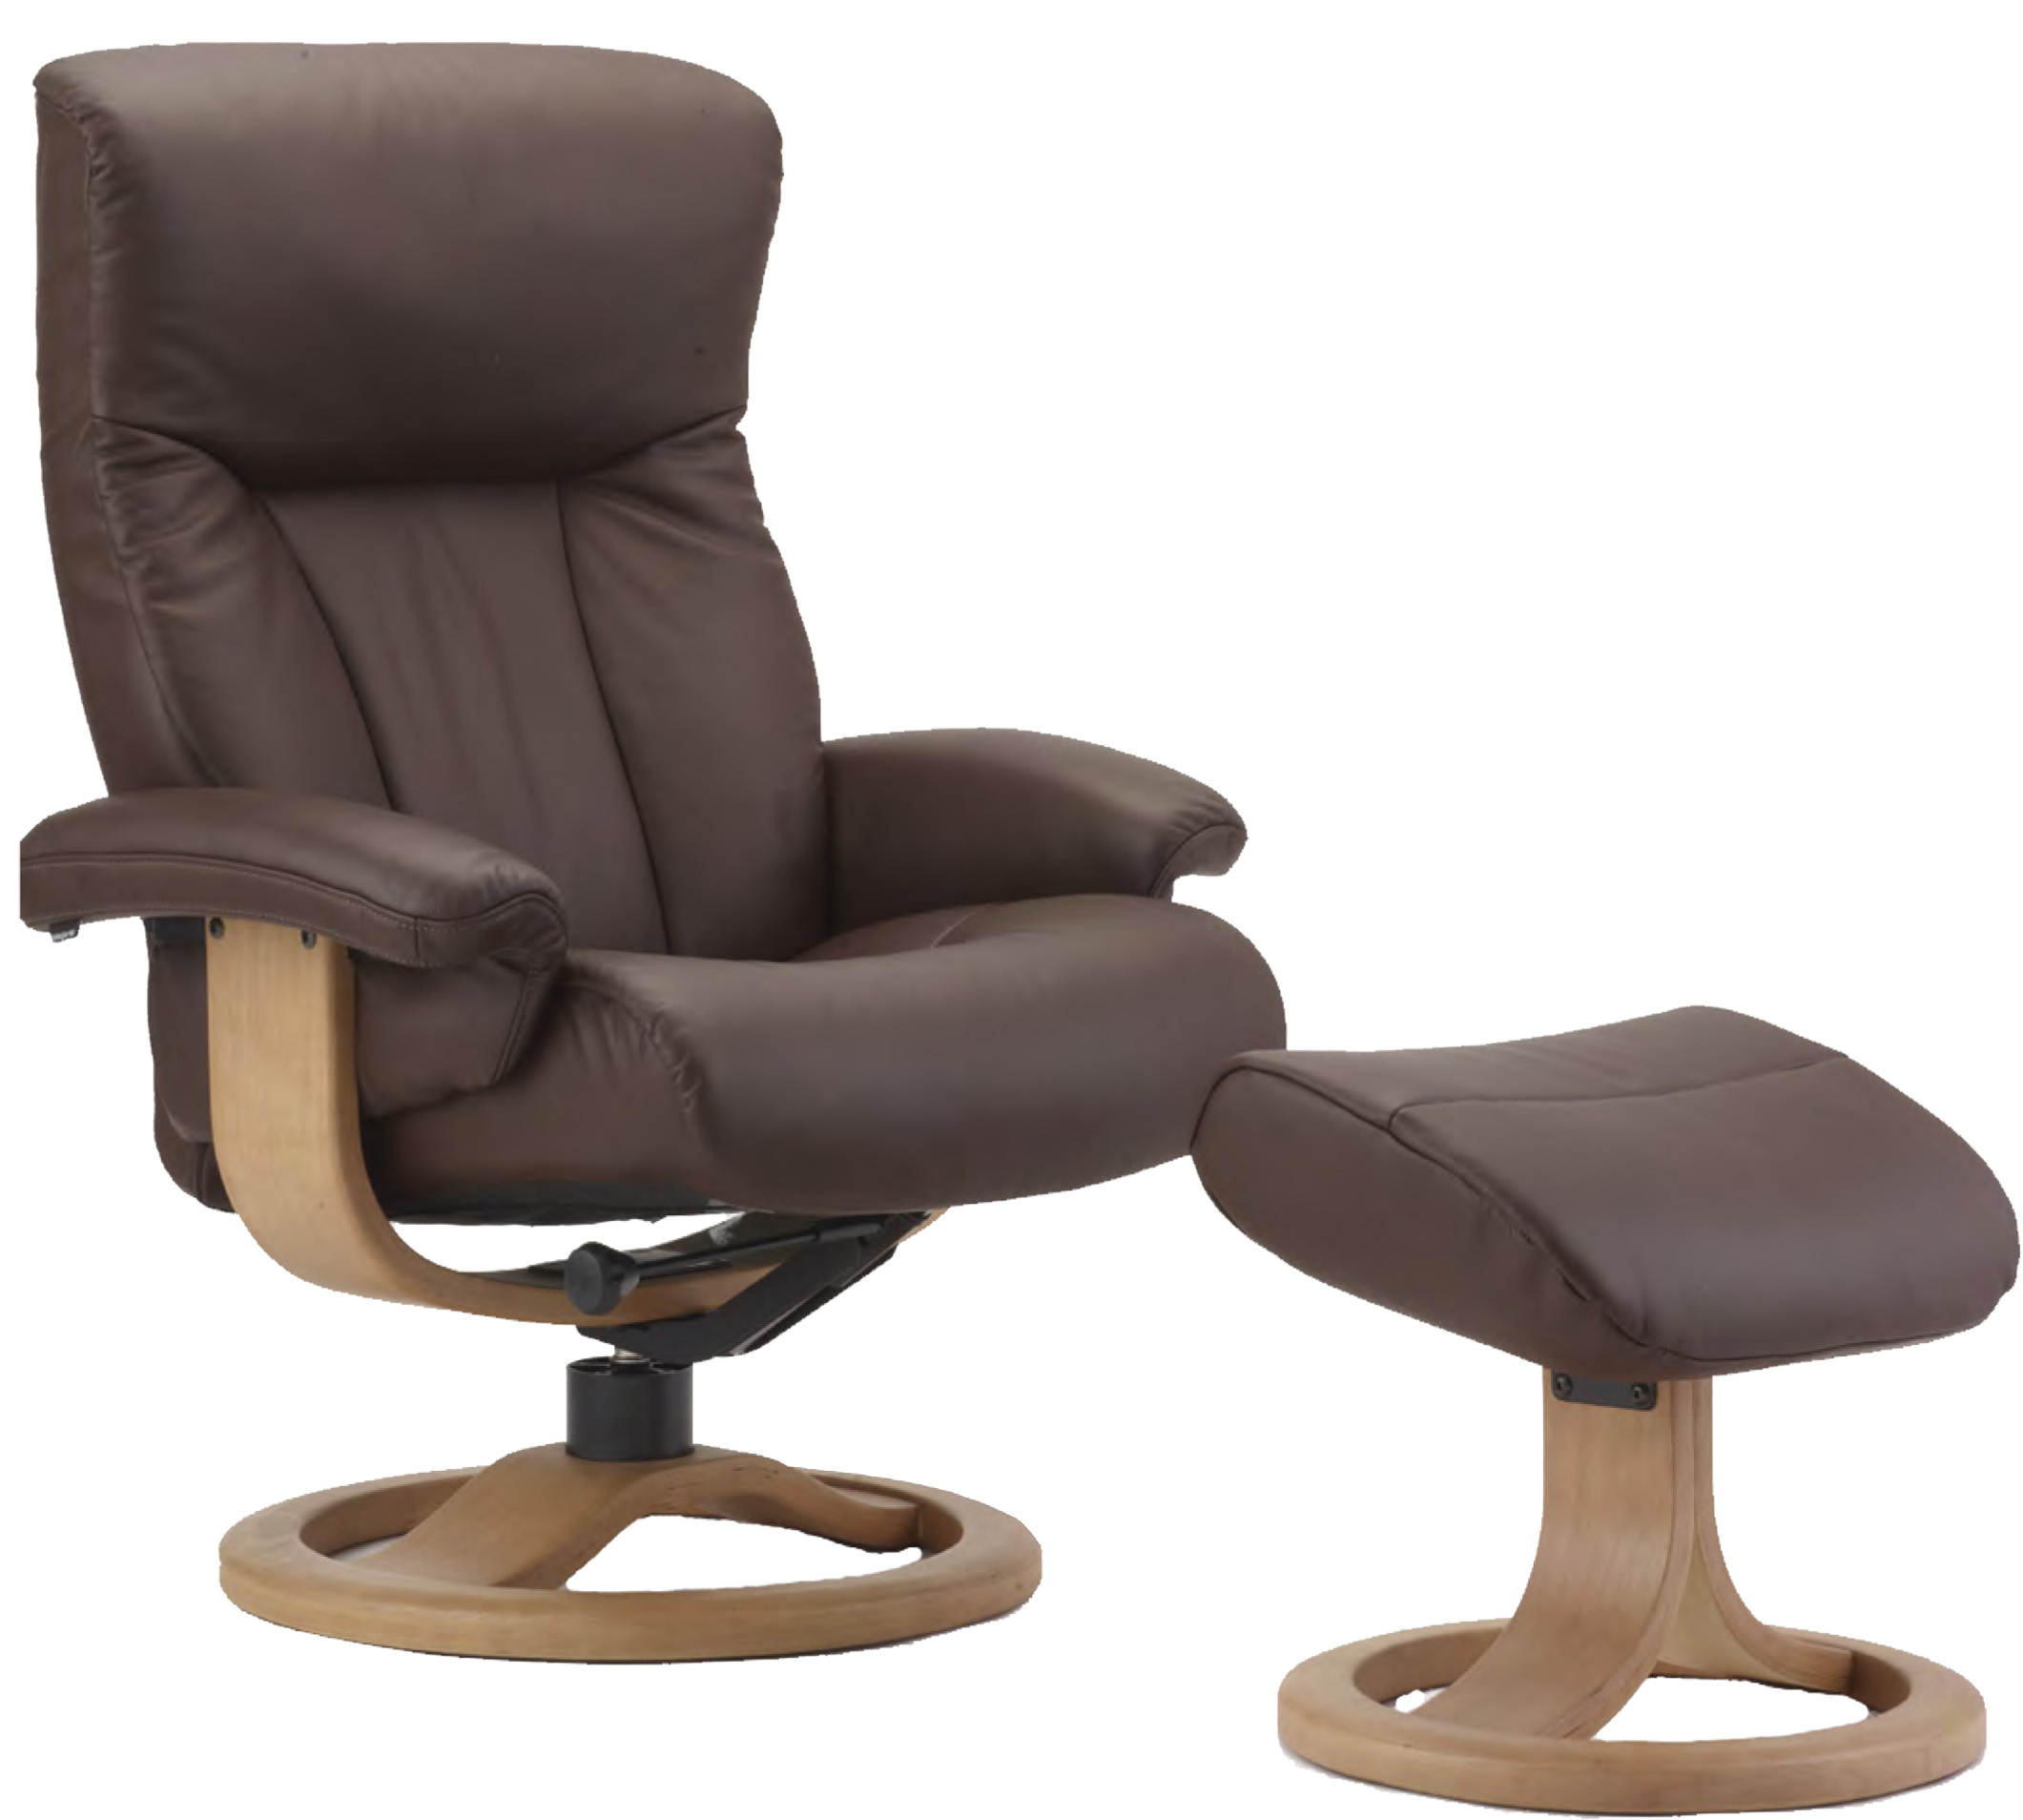 Chairs With Ottoman Fjords Scandic Ergonomic Leather Recliner Chair Ottoman Scandinavian Norwegian Lounge Chair By Hjellegjerde